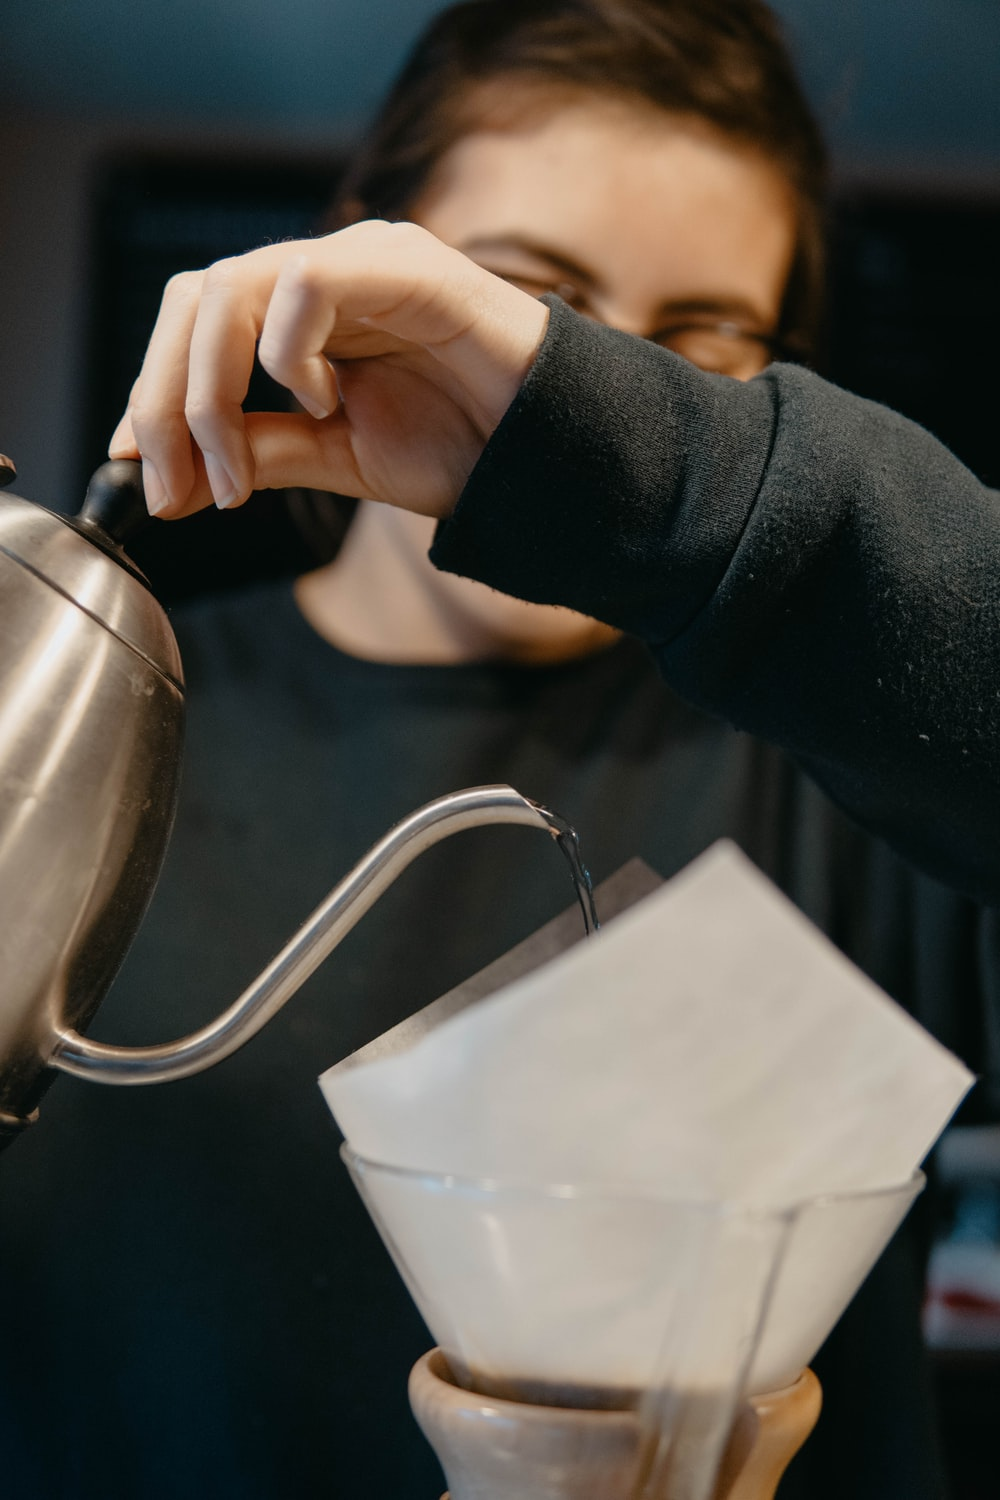 person holding stainless steel kettle